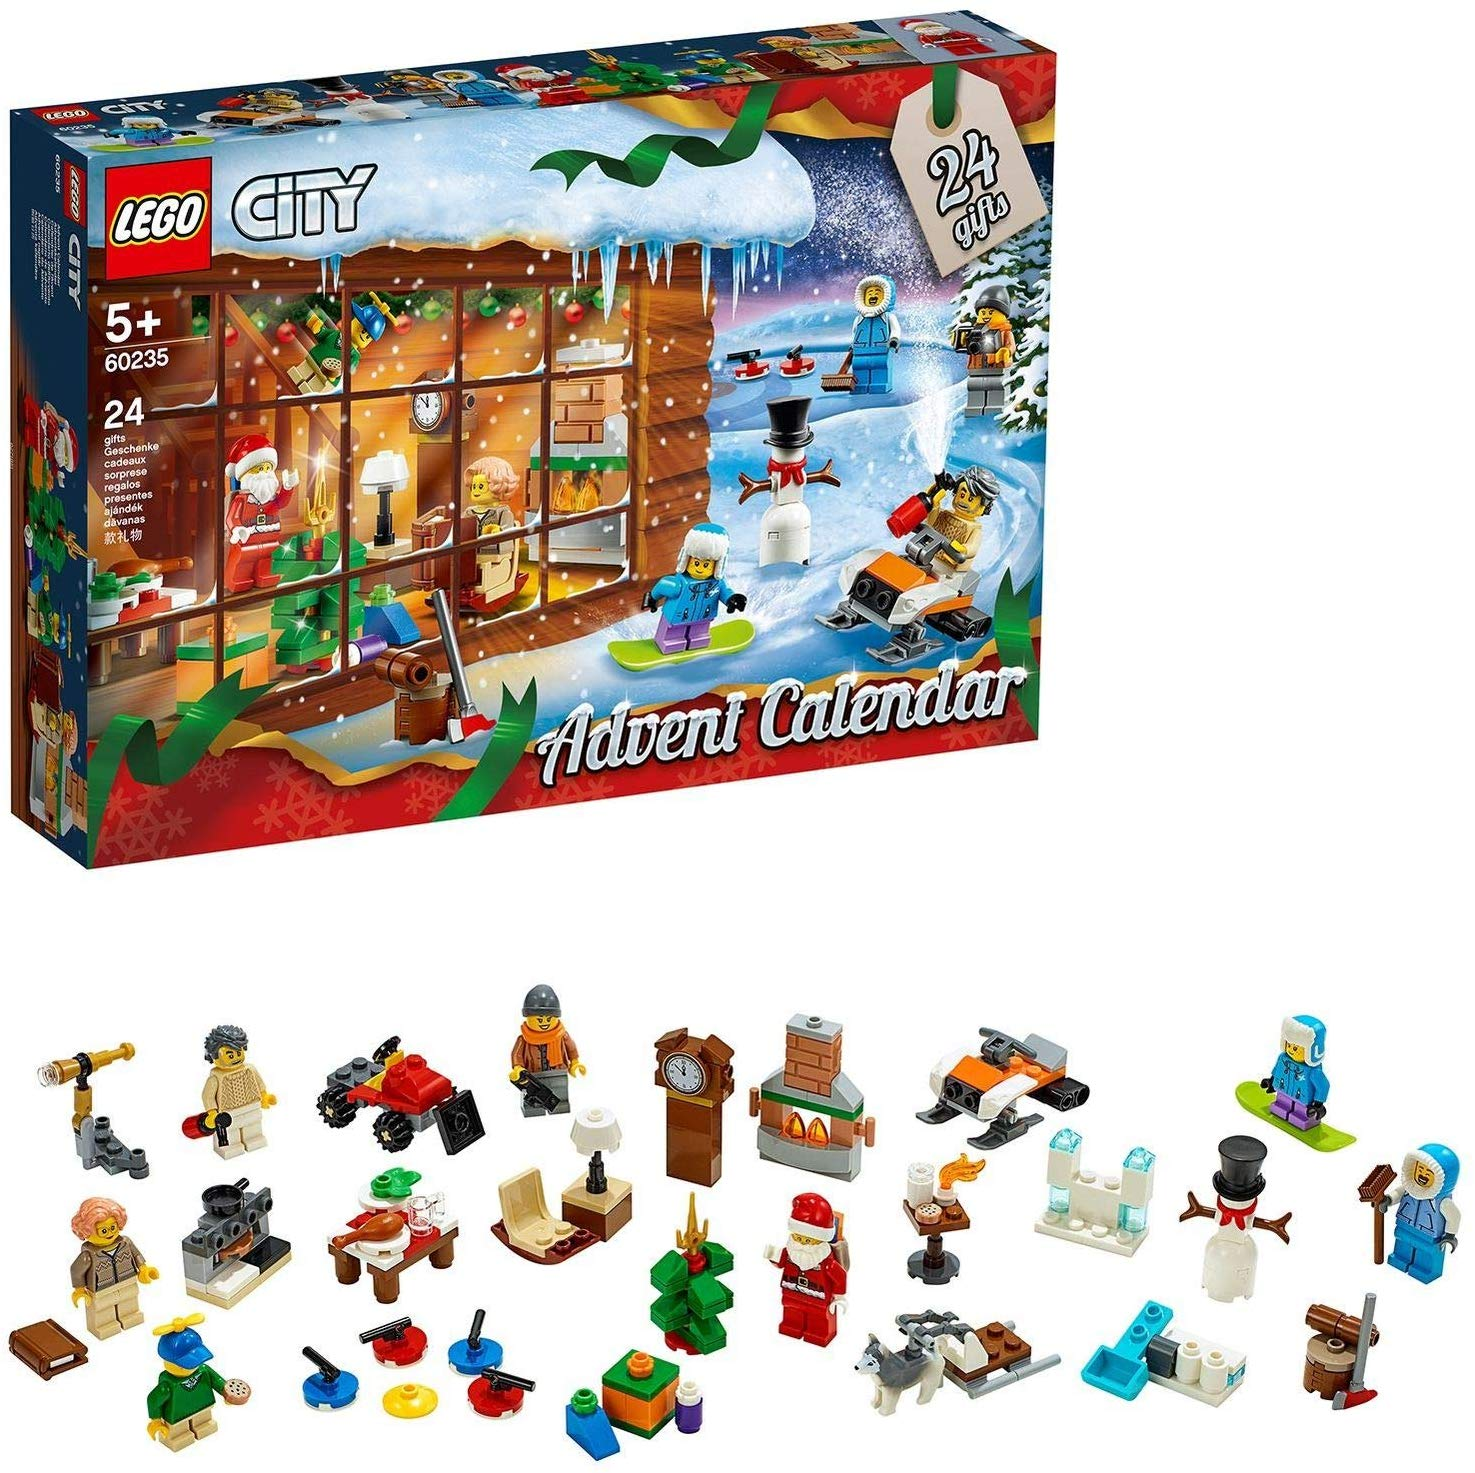 LEGO 60235 City Advent Calendar 2019 Set with 24 Buildable Gift Toys